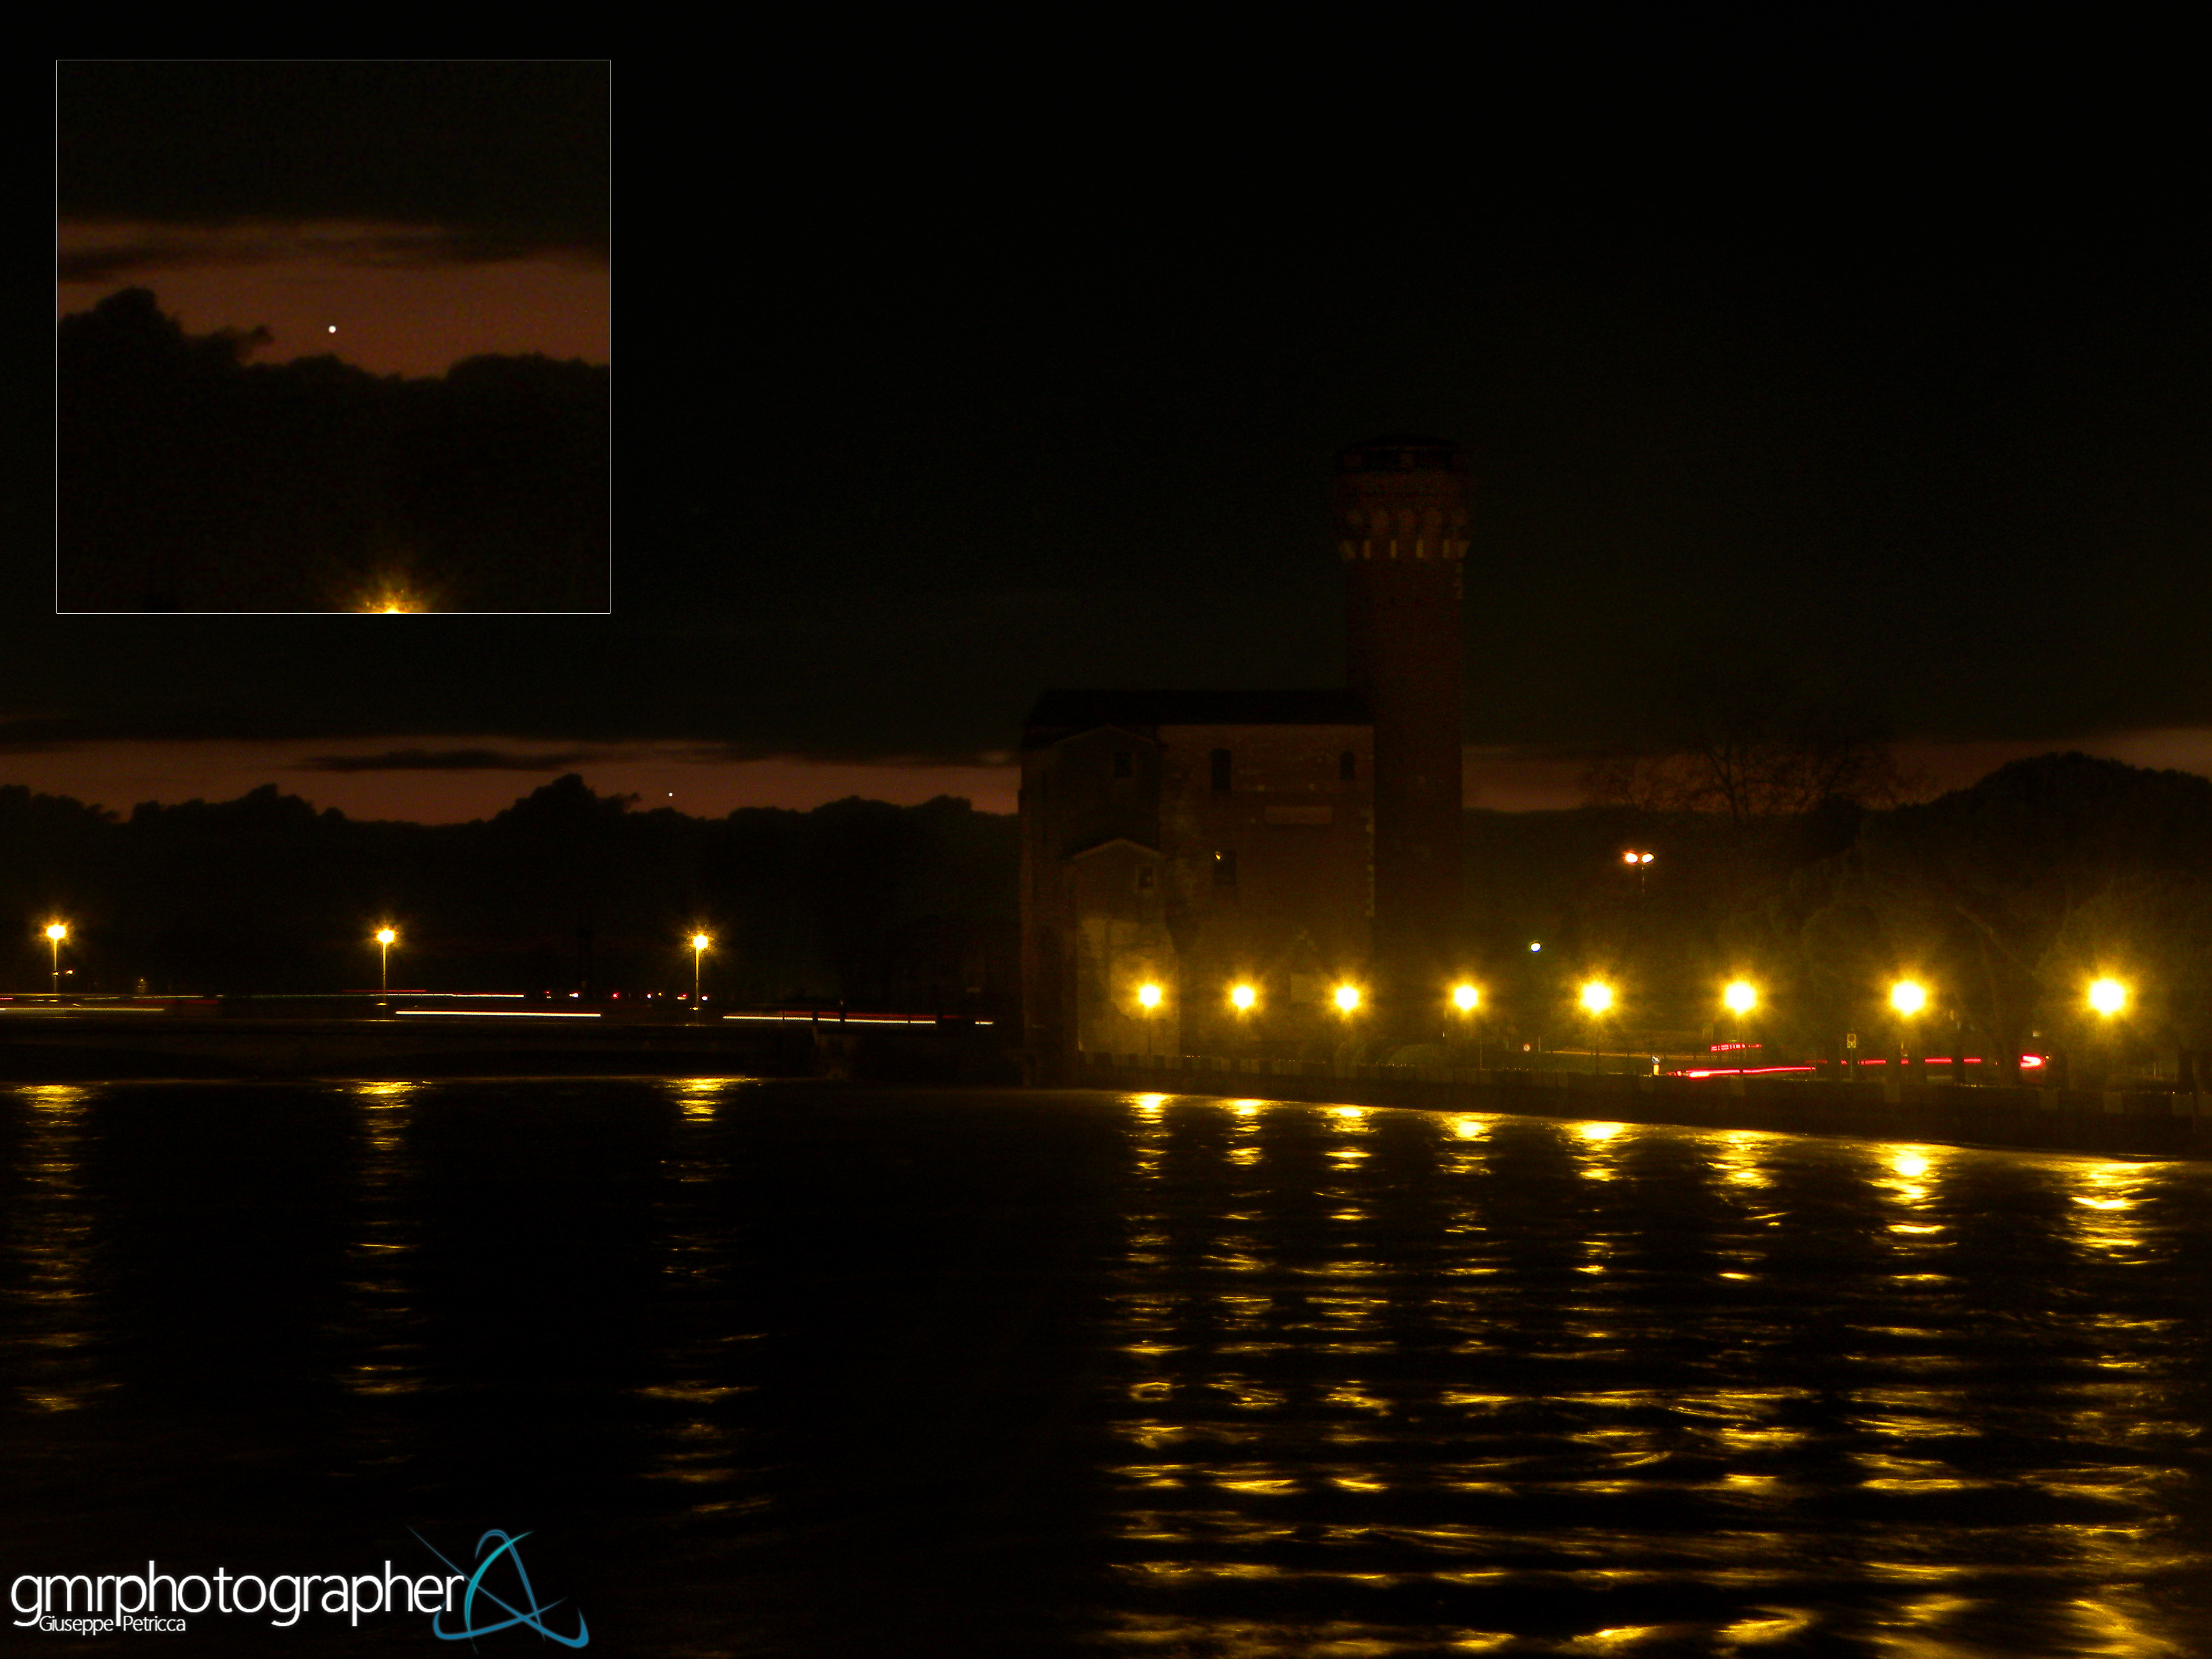 Mercury Shines Over Pisa by Giuseppe Petricca